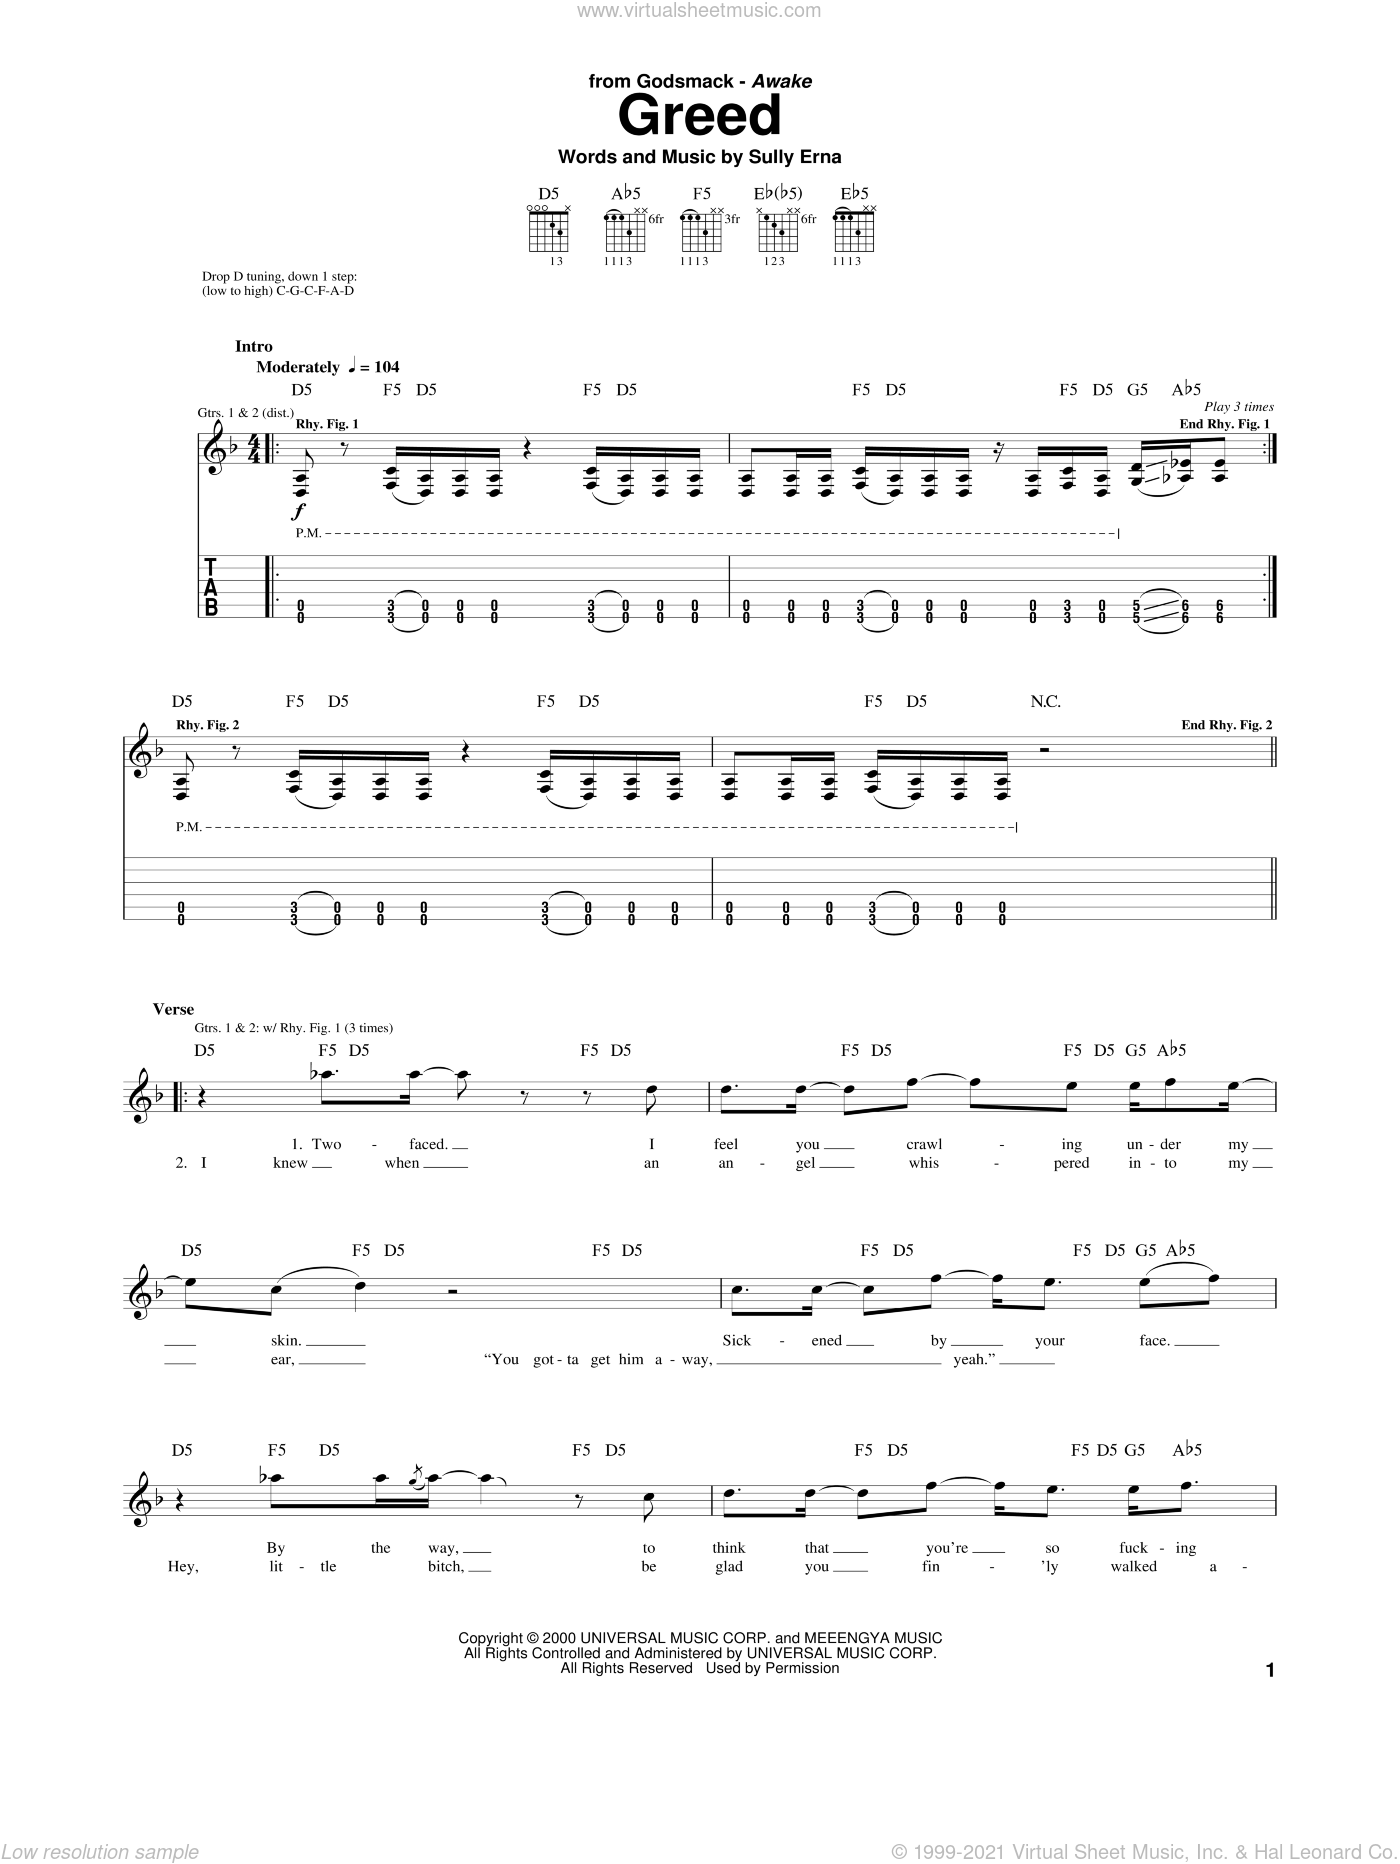 Greed sheet music for guitar (tablature) by Godsmack and Sully Erna, intermediate